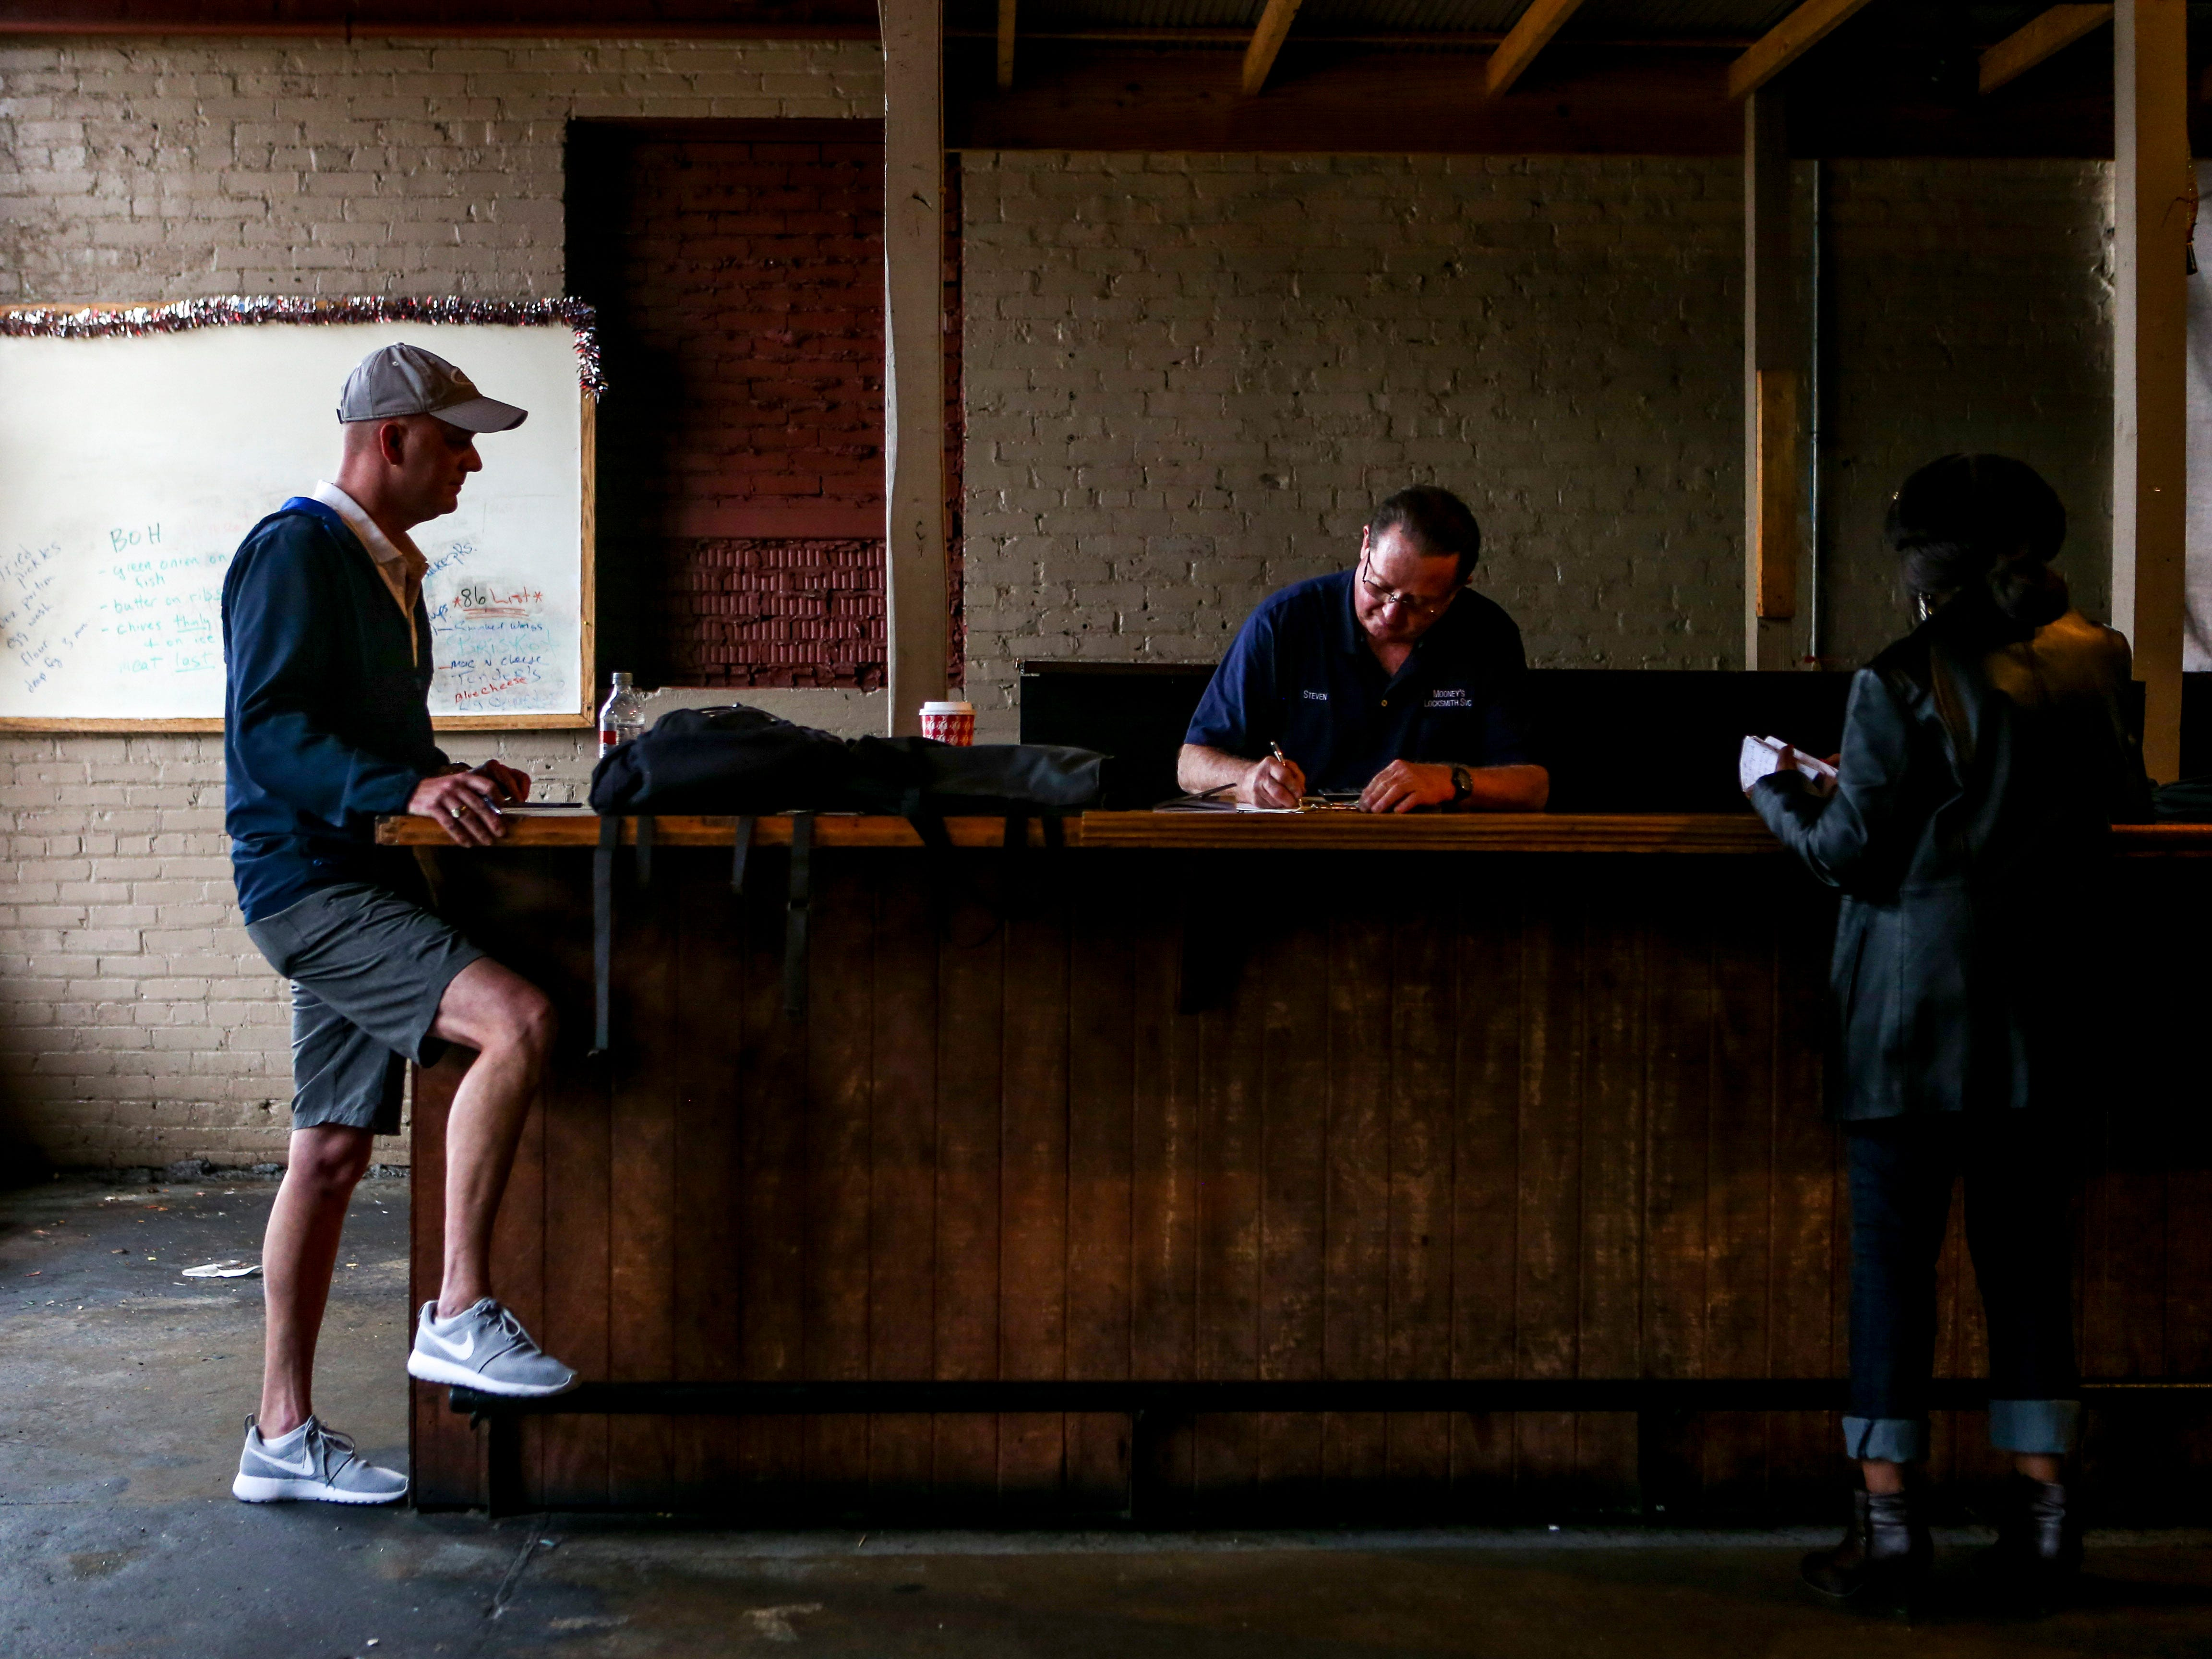 Drew Baker, the new owner of the building downtown, Steve Mooney, center, a locksmith that built the news keys for the location, and Katie Brantley, right, hang out during the finalizing of creating new keys at West Alley BBQ in Jackson, Tenn., on Friday, Nov. 30, 2018.